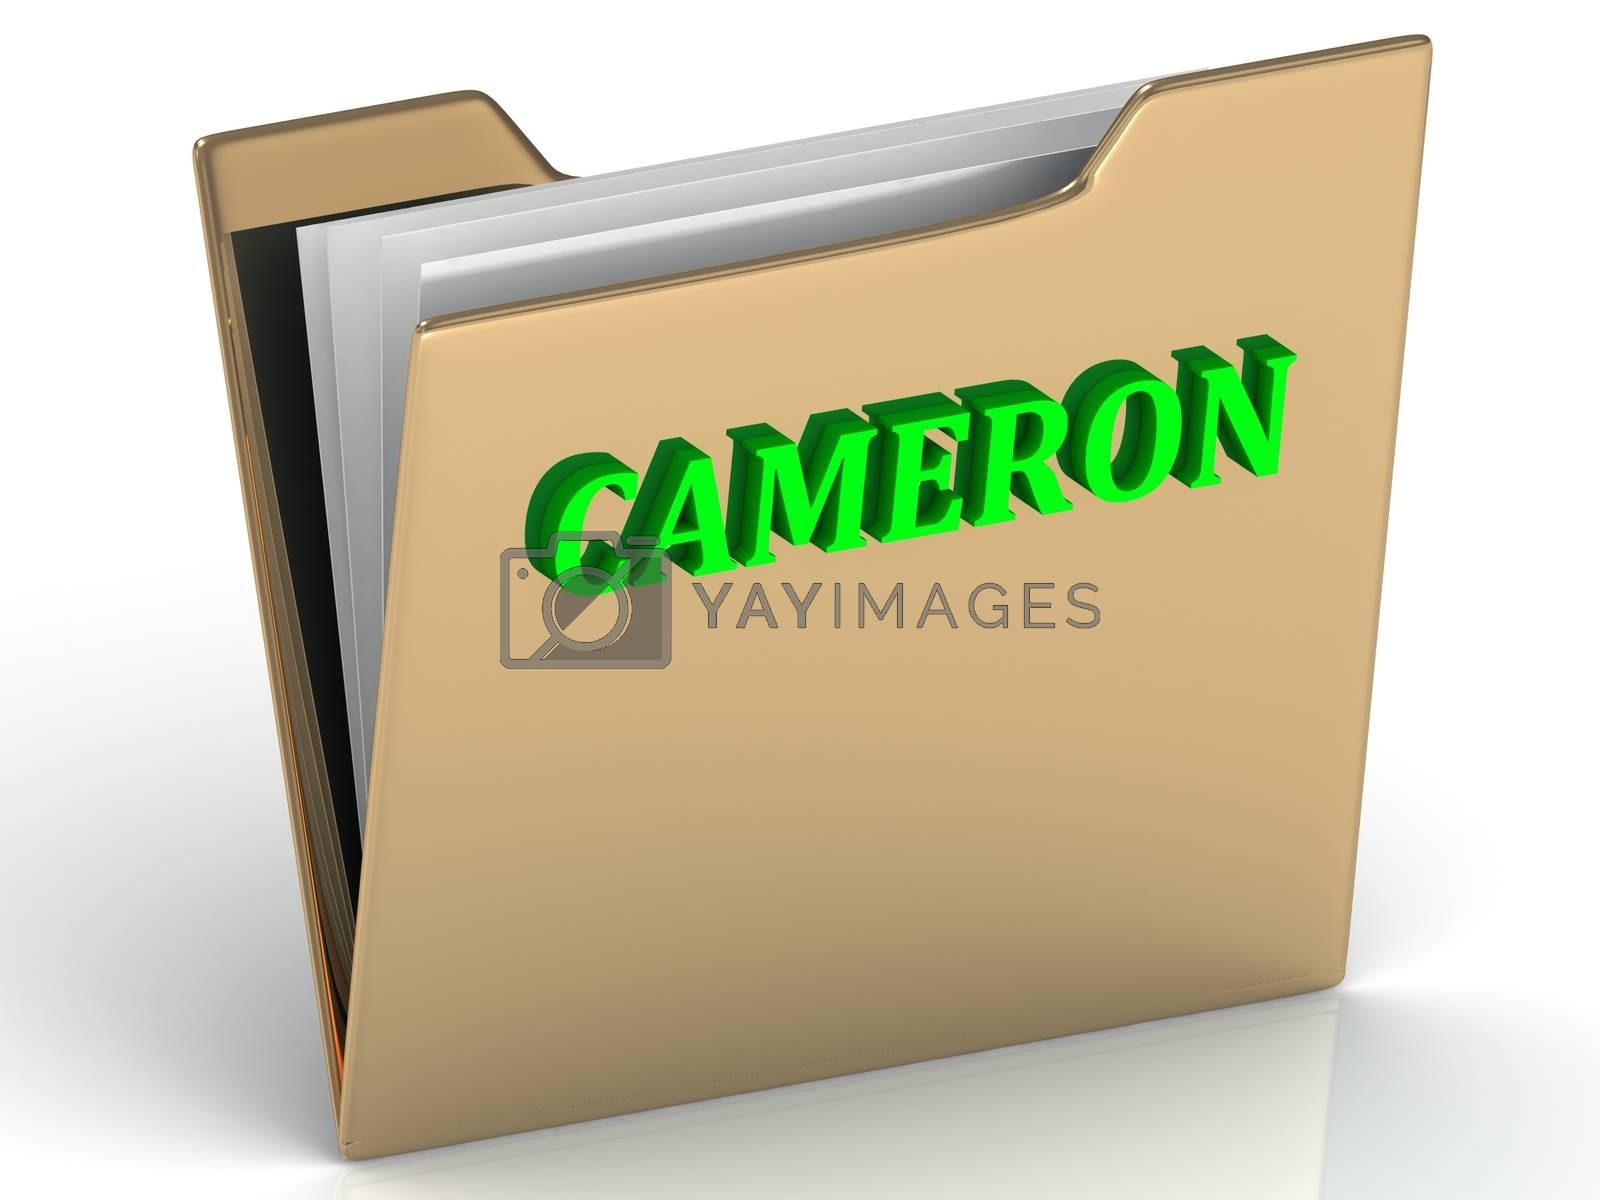 CAMERON- bright green letters on gold paperwork folder on a white background